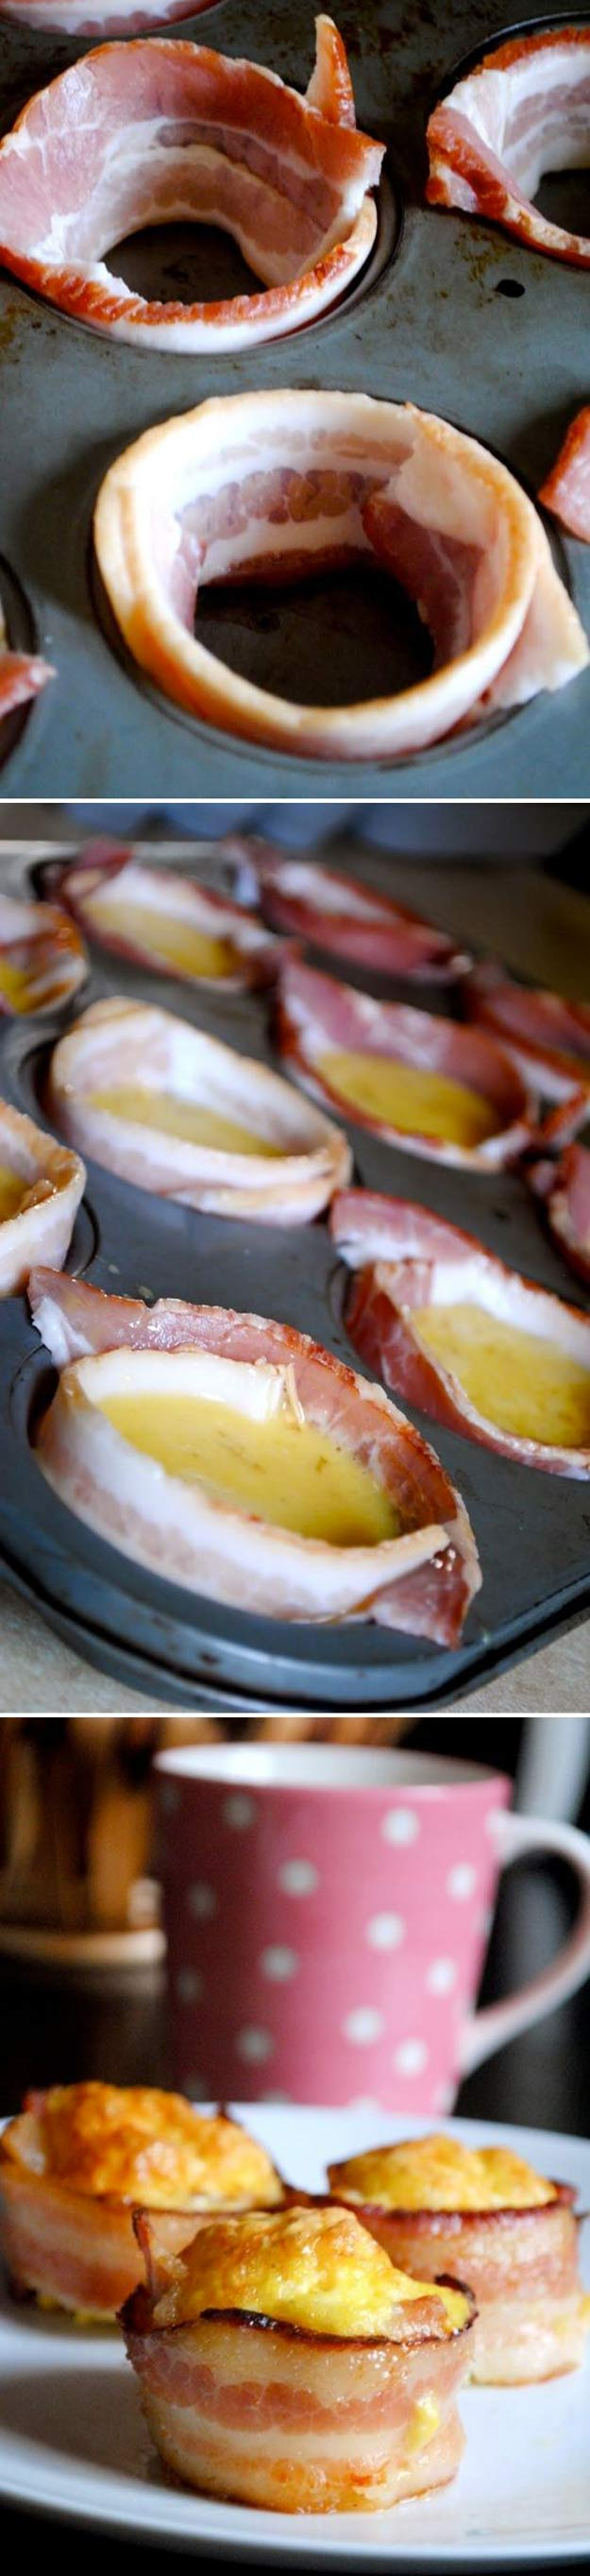 Coolest Cooking Hacks, Tips and Tricks for Easy Meal Prep, Recipe Shortcuts and Quick Ideas for Food |  Try Mini Bacon and Egg Cups  | http://cooking-tips-diy-kitchen-hacks